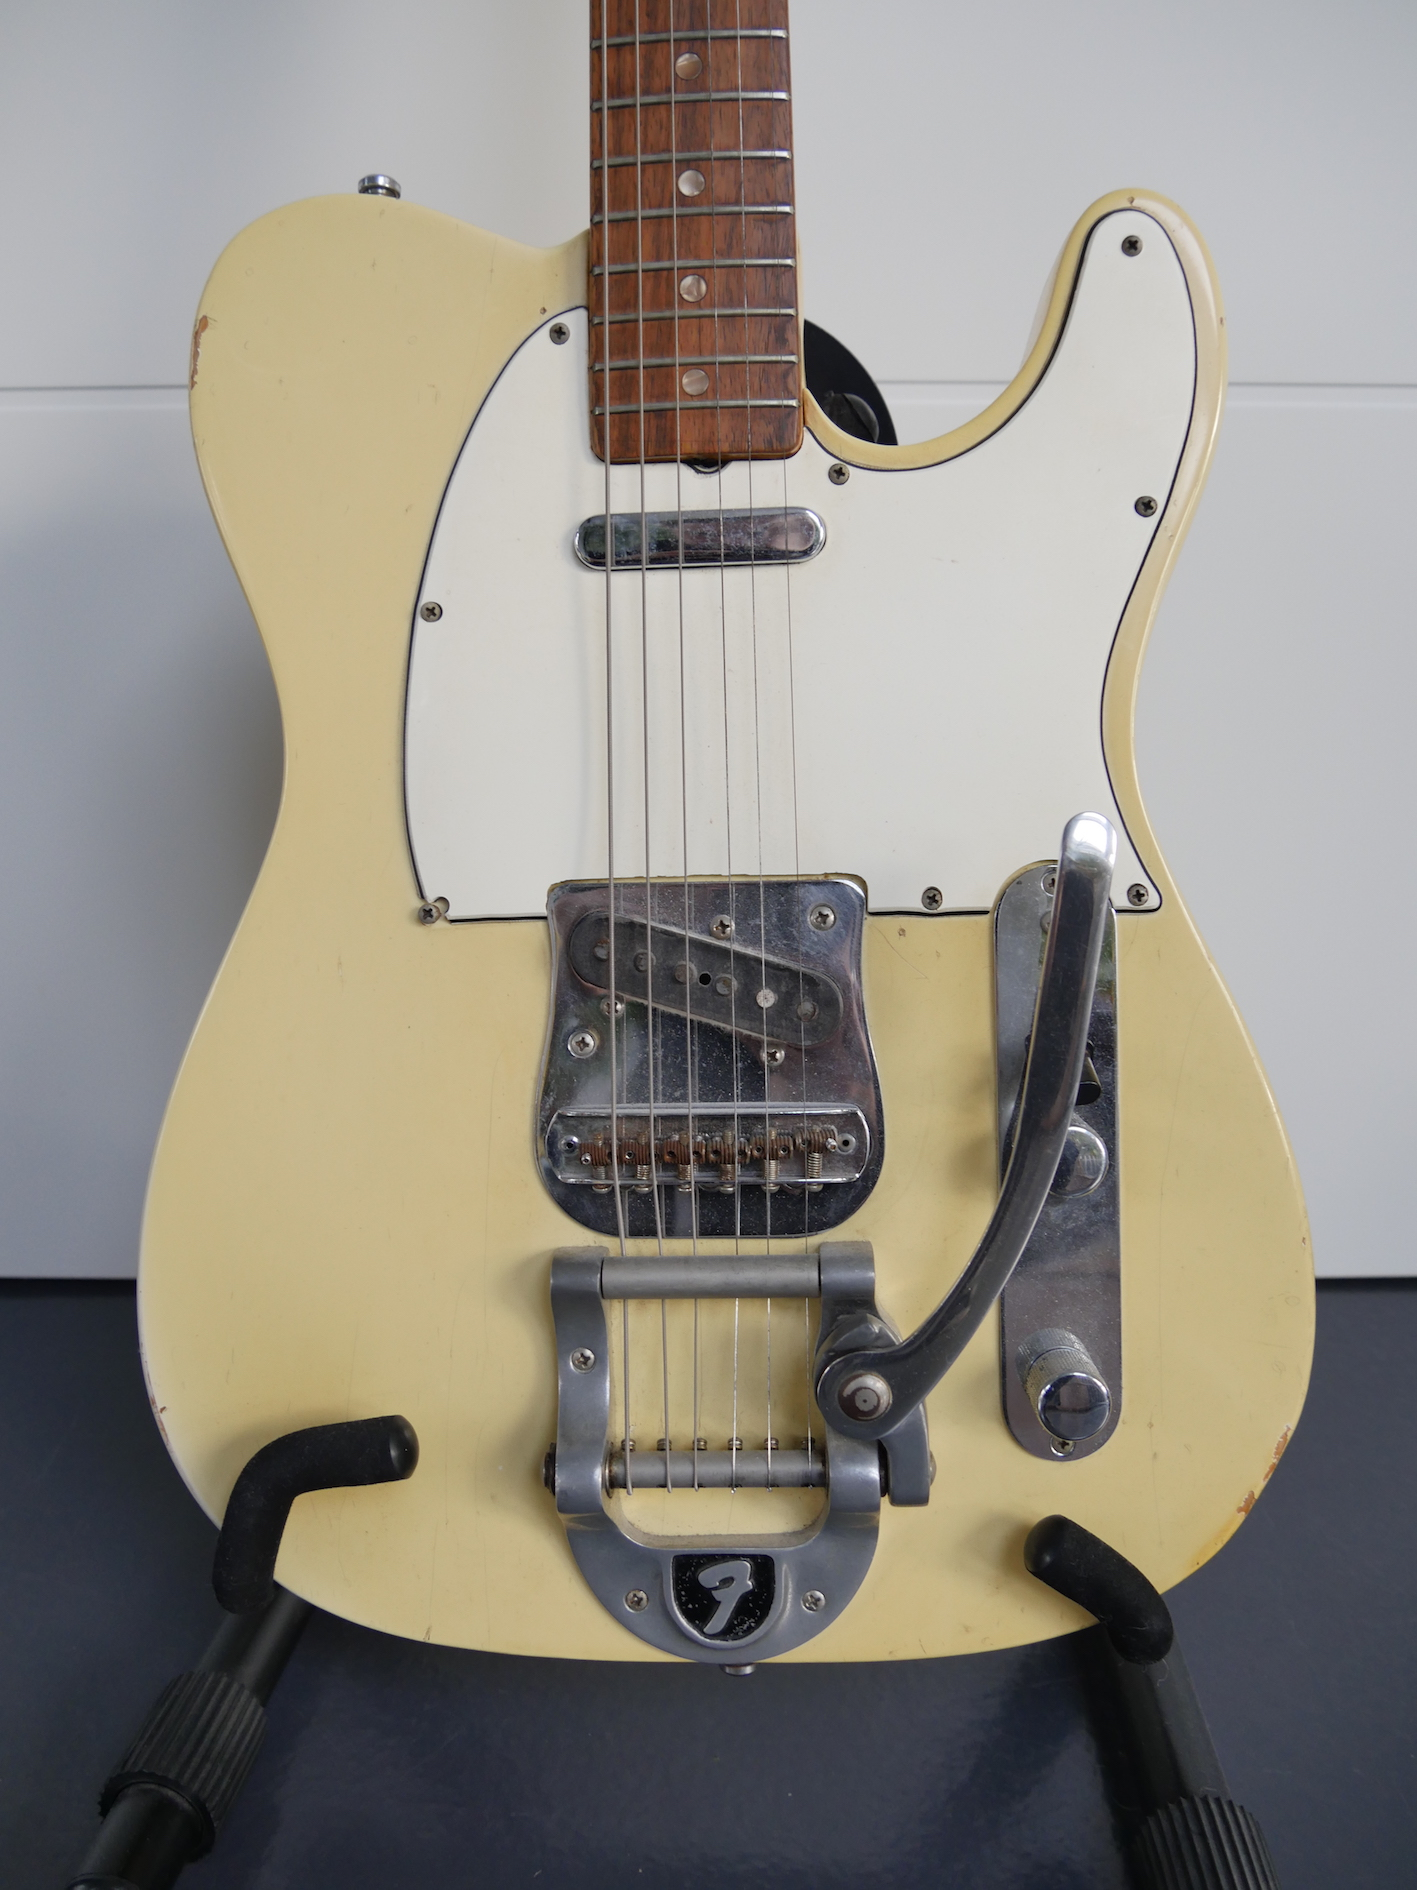 fender telecaster with bigsby 1968 olympic white guitar for sale. Black Bedroom Furniture Sets. Home Design Ideas